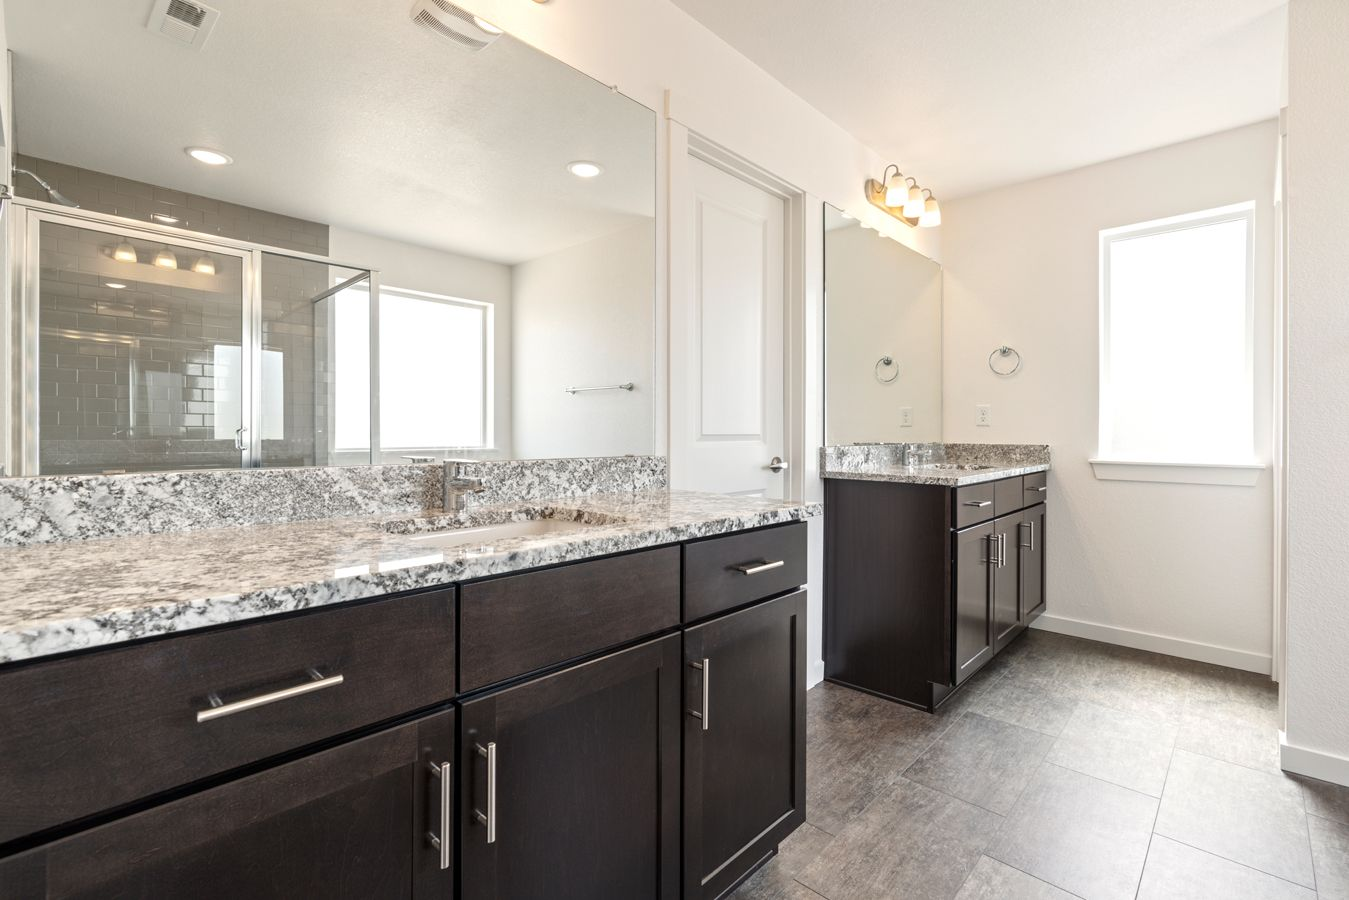 Bathroom featured in the Clover By Wonderland Homes in Greeley, CO